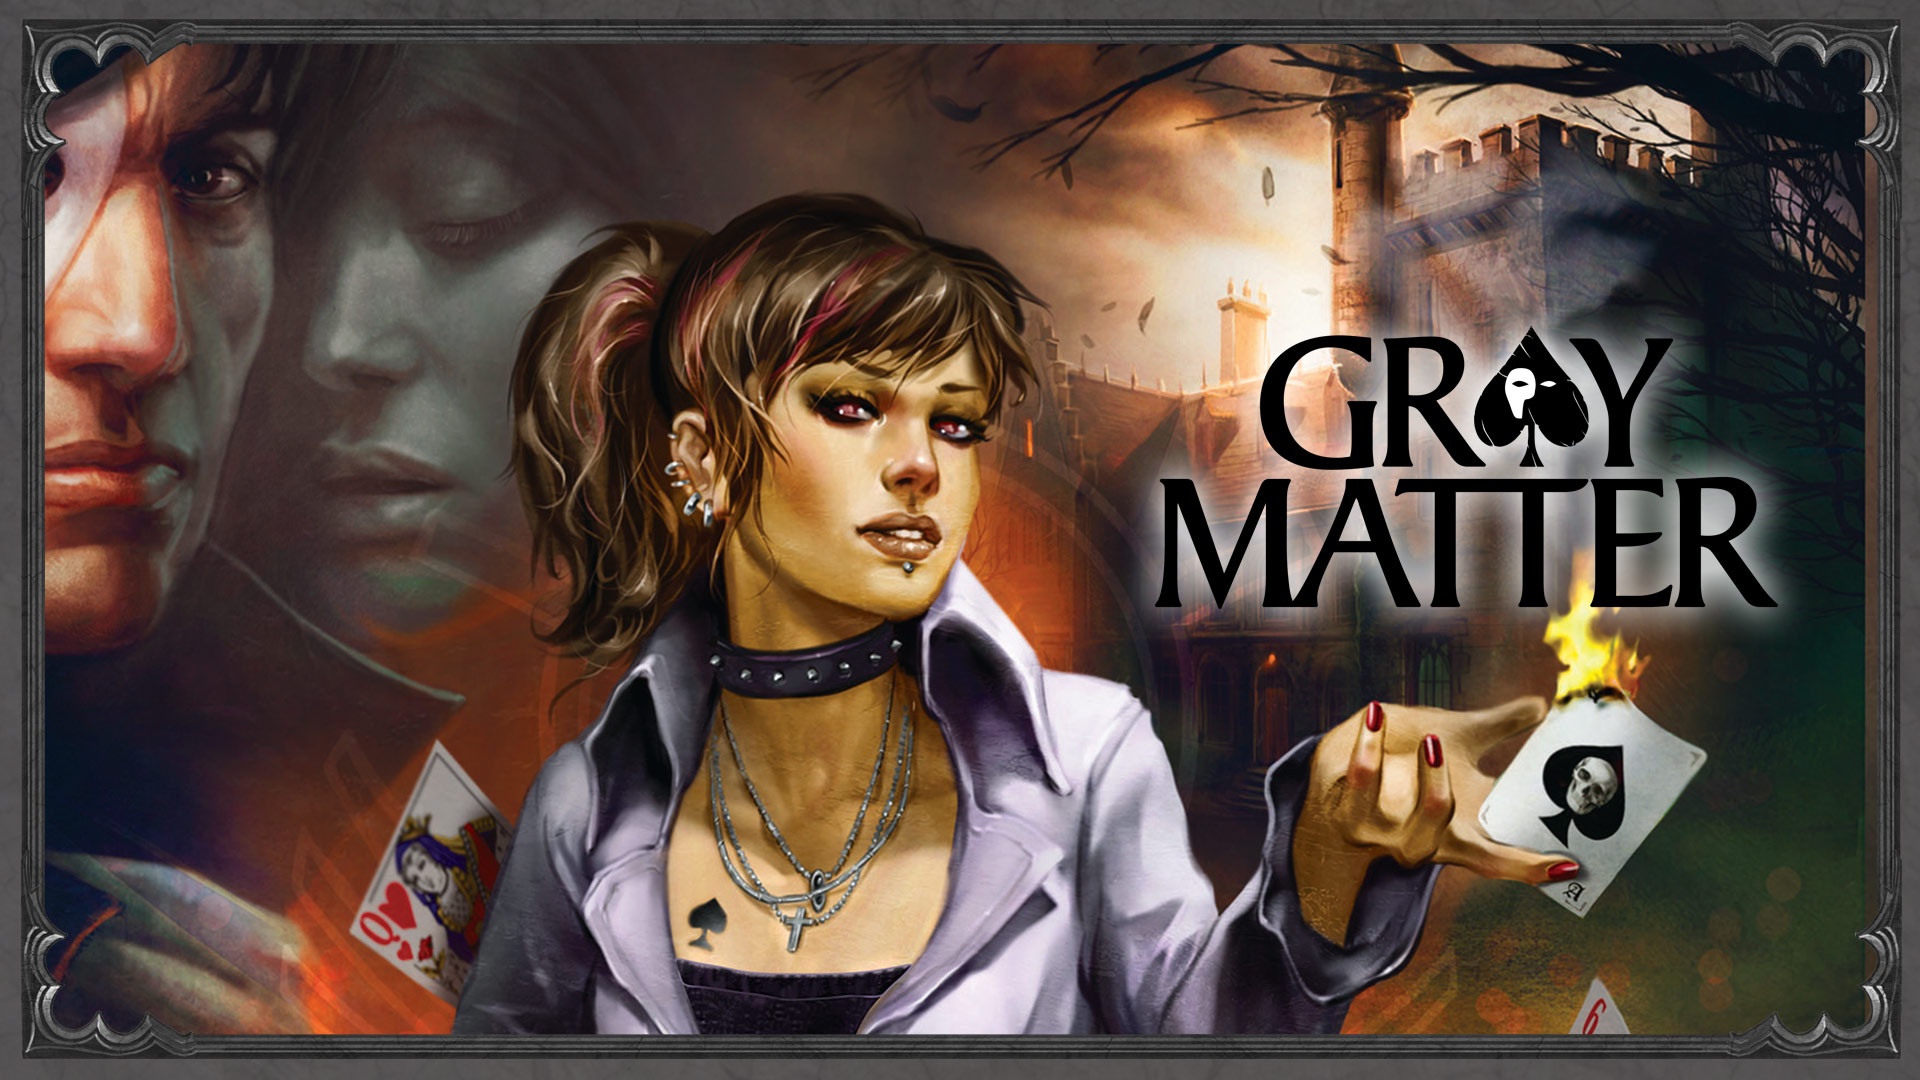 Gray Matter Backgrounds, Compatible - PC, Mobile, Gadgets| 1920x1080 px